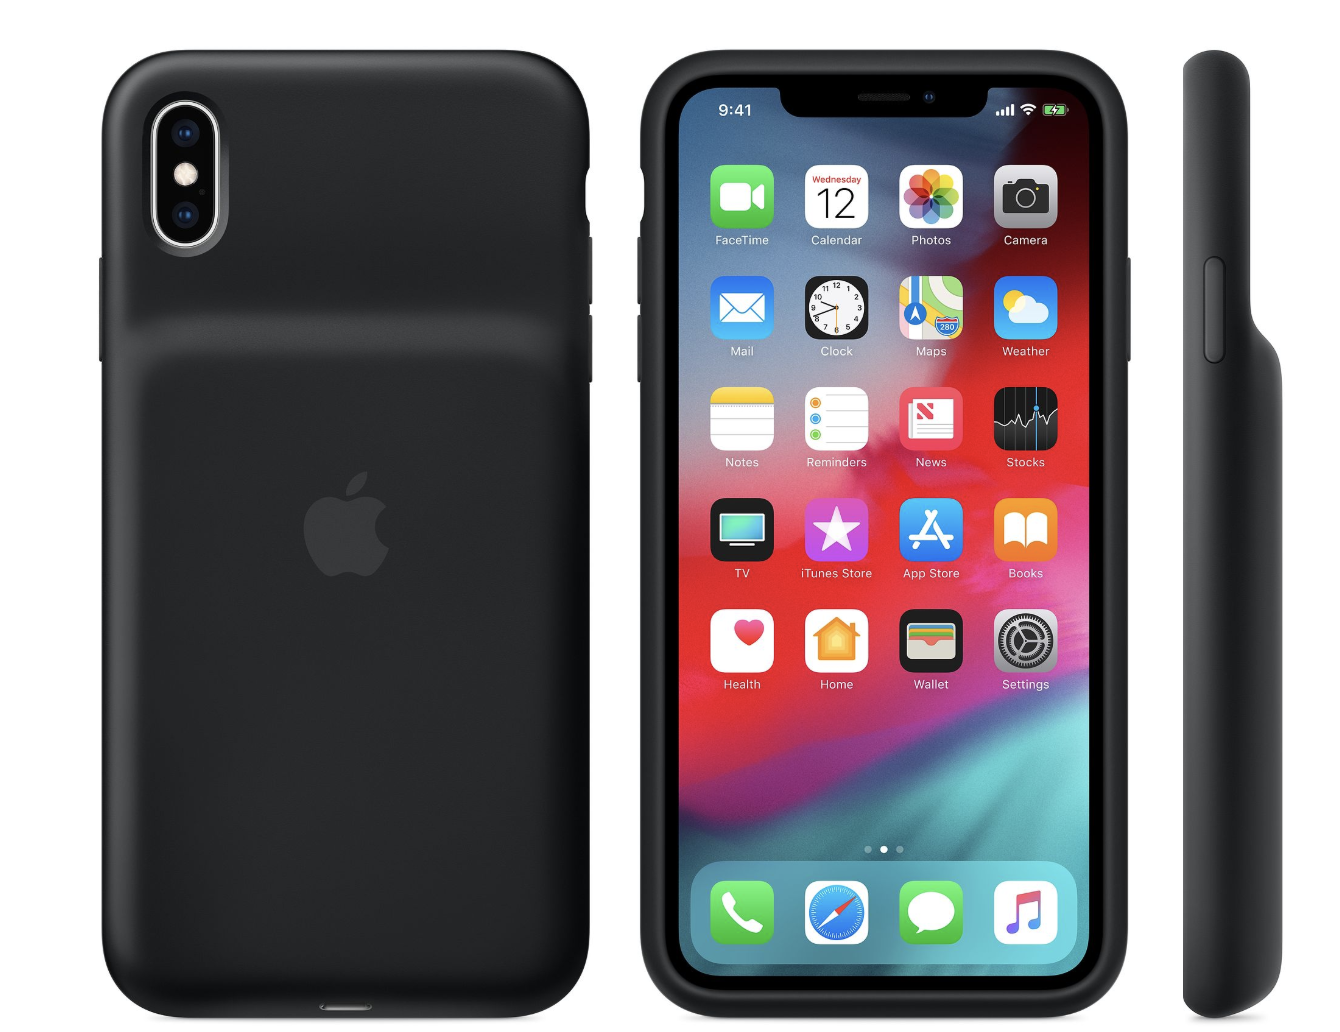 techcrunch.com - Brian Heater - Apple's battery cases return for the iPhone XS and XR